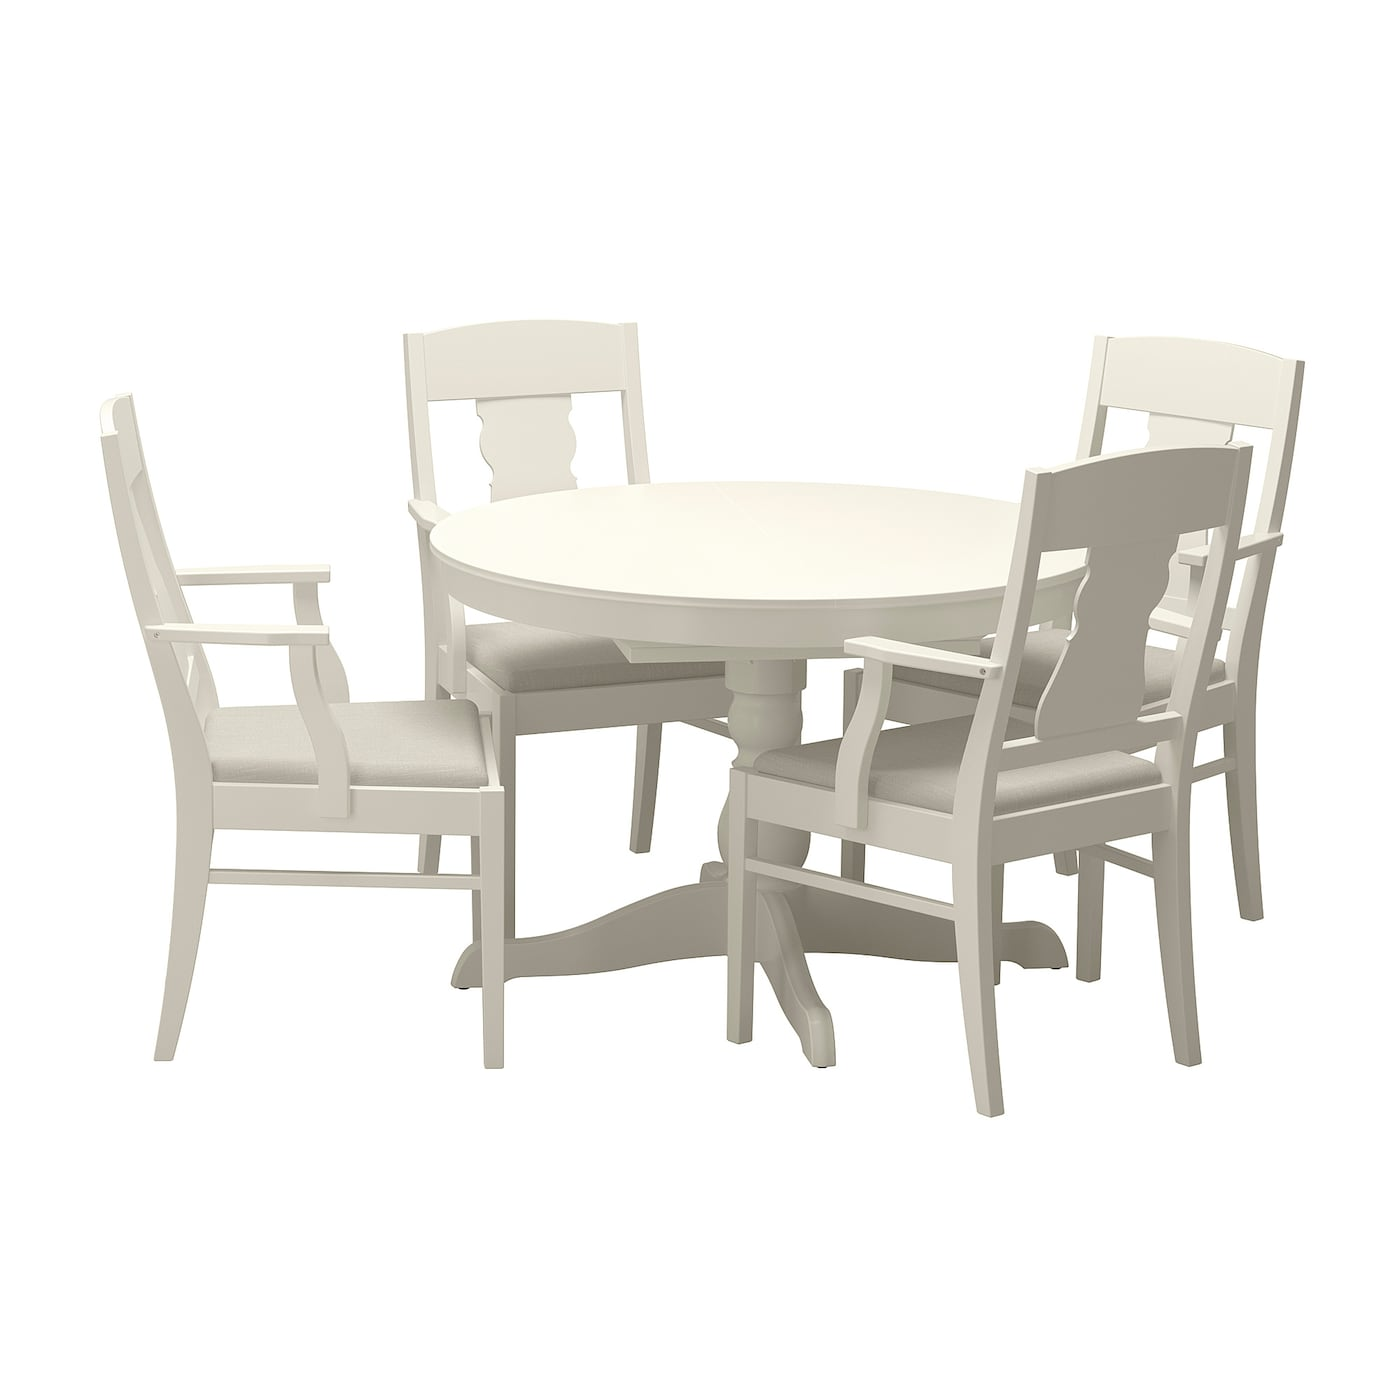 Ingatorp ingatorp table and 4 chairs white 110 155 cm ikea - Ikea dining table with 4 chairs ...